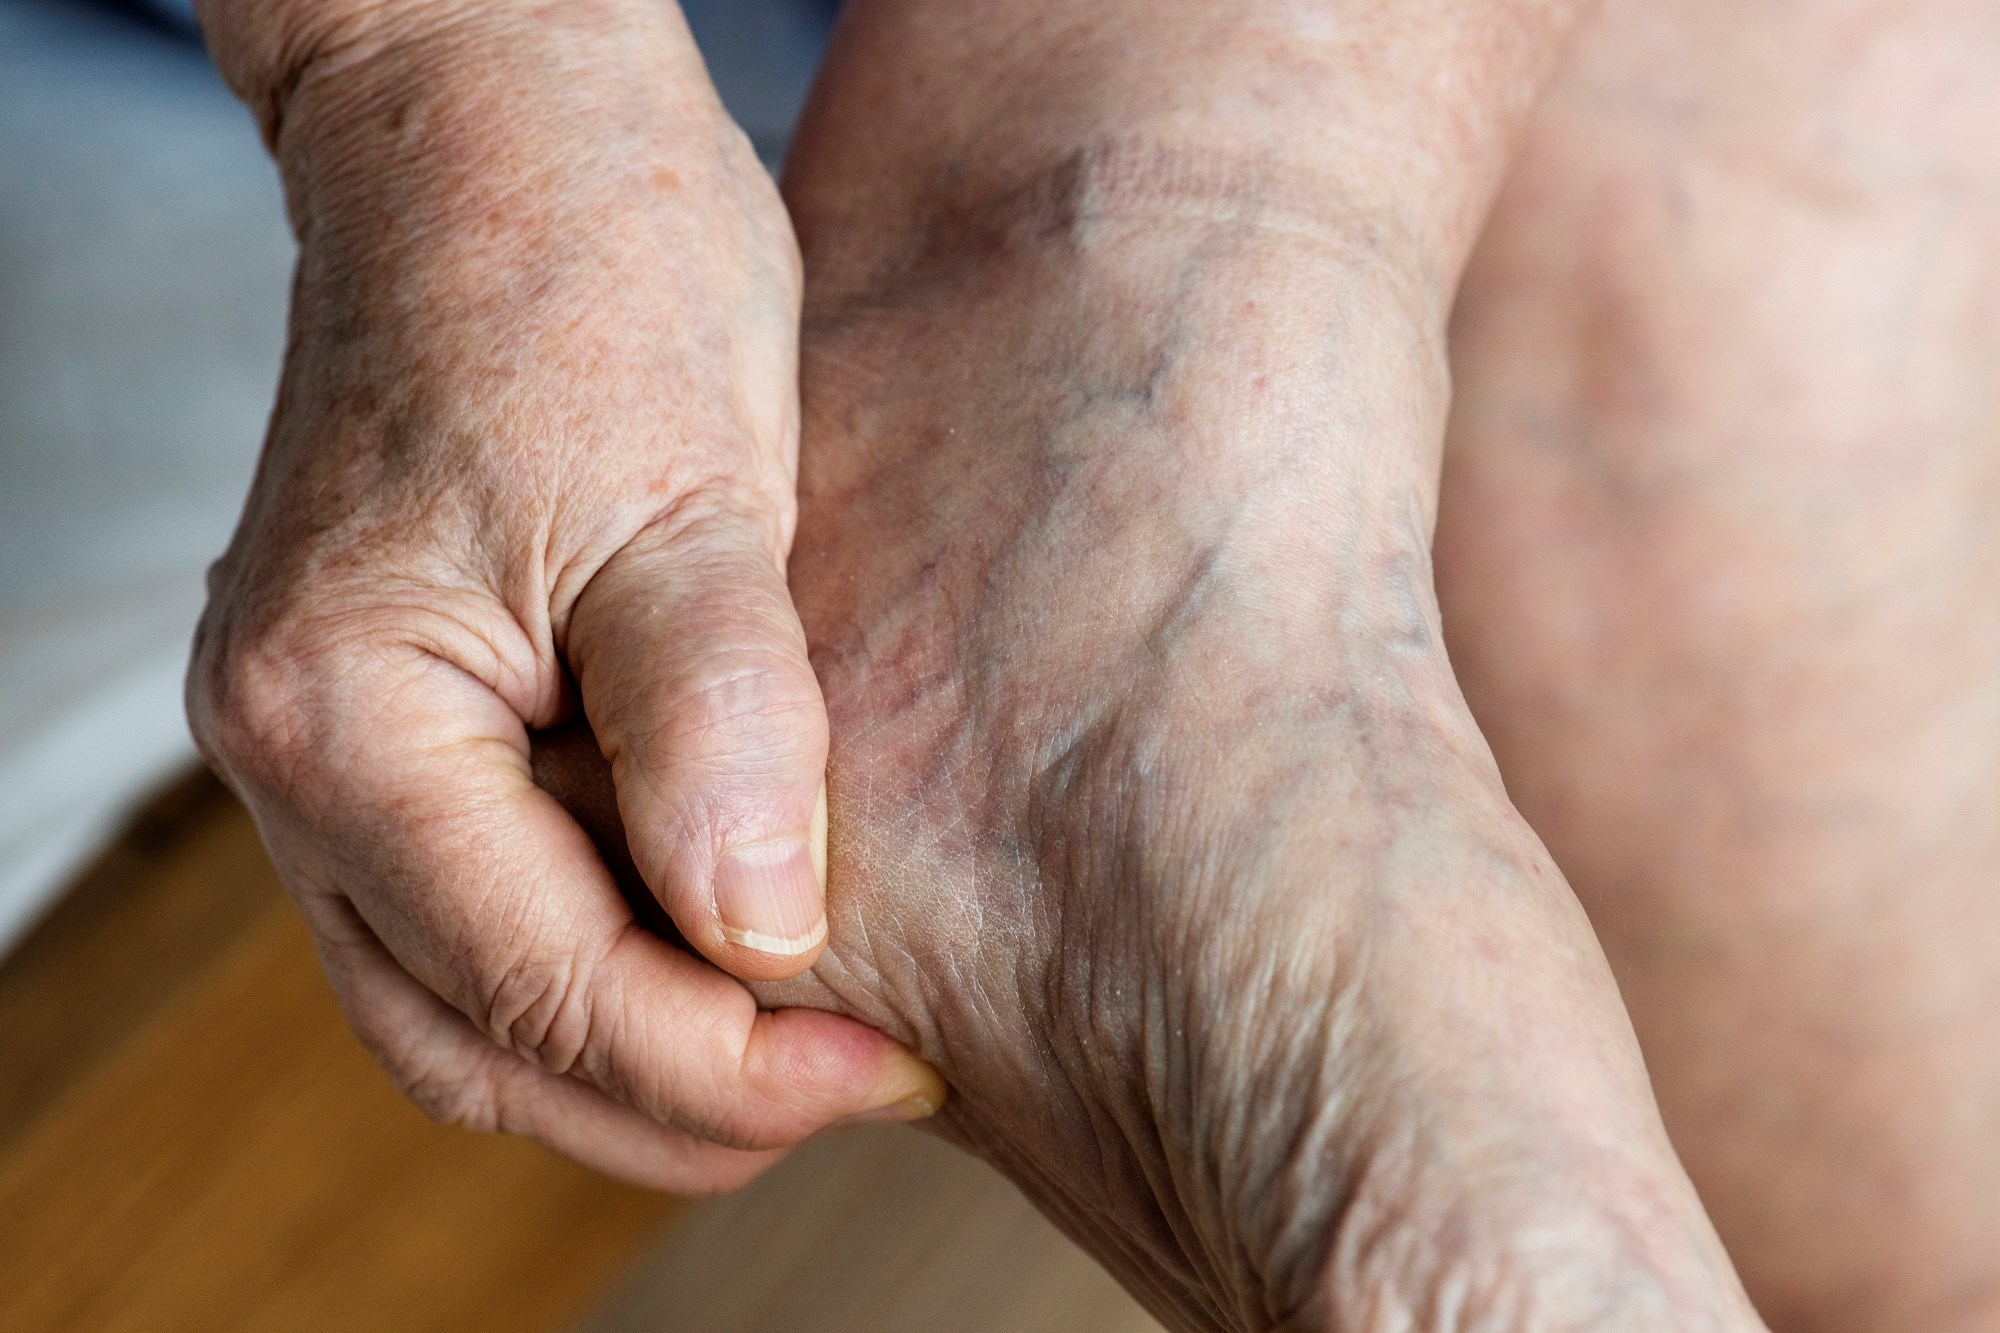 Urate-Lowering Therapy Reduces Non-Episodic Foot Pain in Patients Without Gout Diagnosis